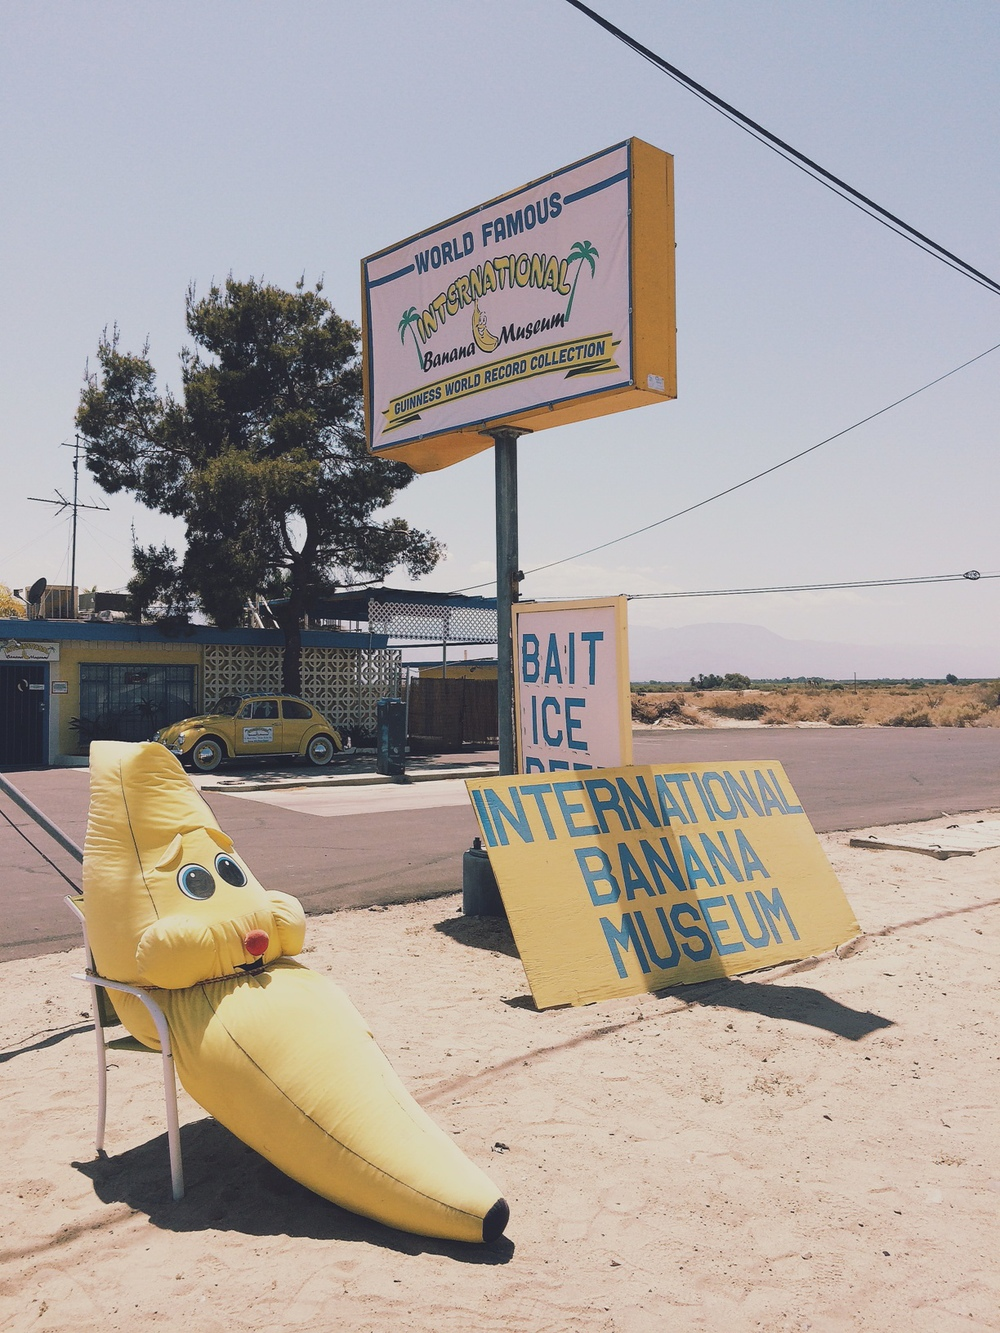 International Banana Museum